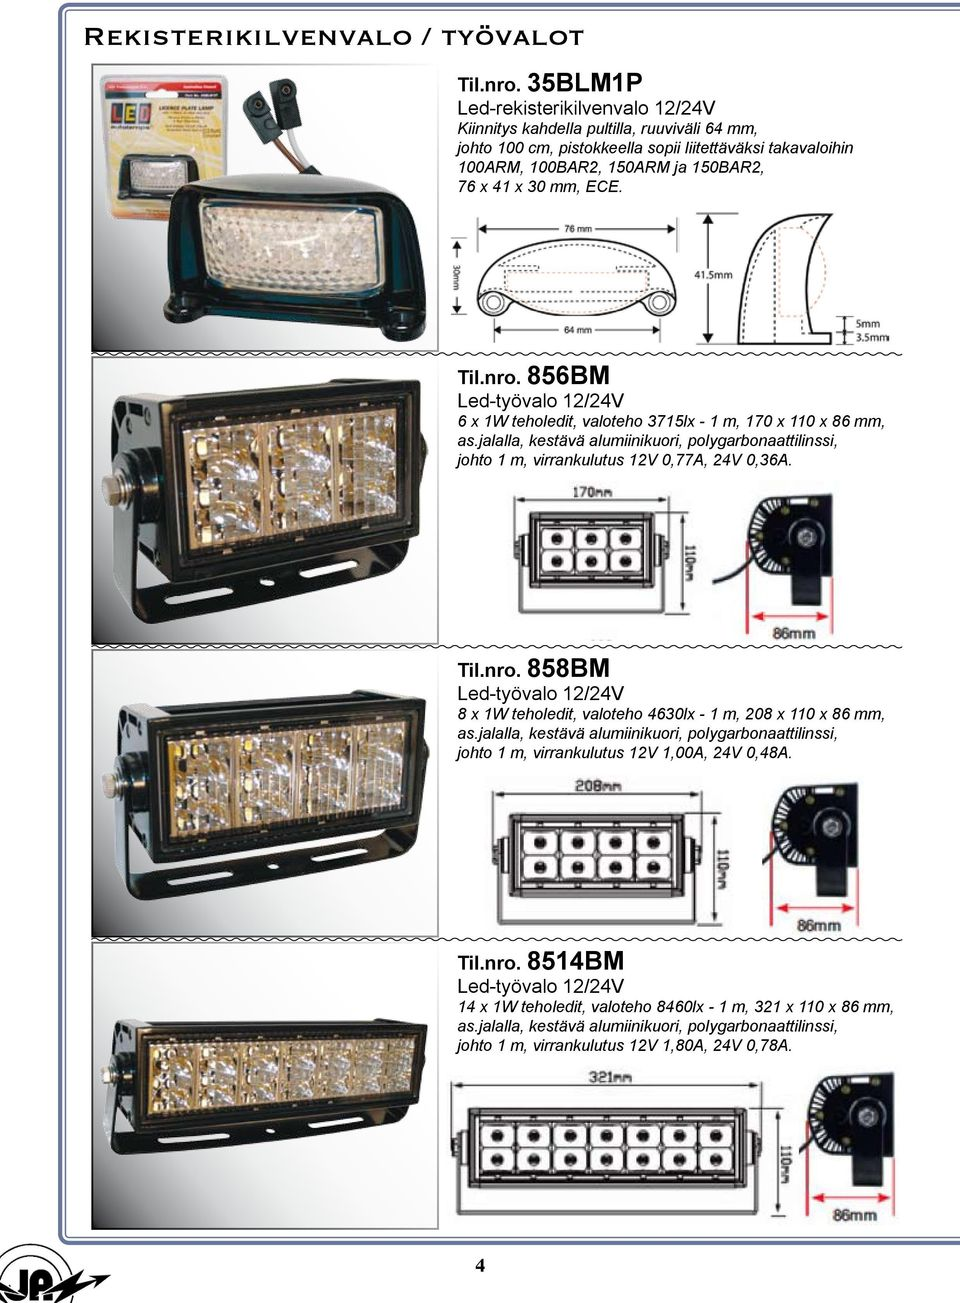 ECE. Til.nro. 856BM Led-työvalo 12/24V 6 x 1W teholedit, valoteho 3715lx - 1 m, 170 x 110 x 86 mm, as.